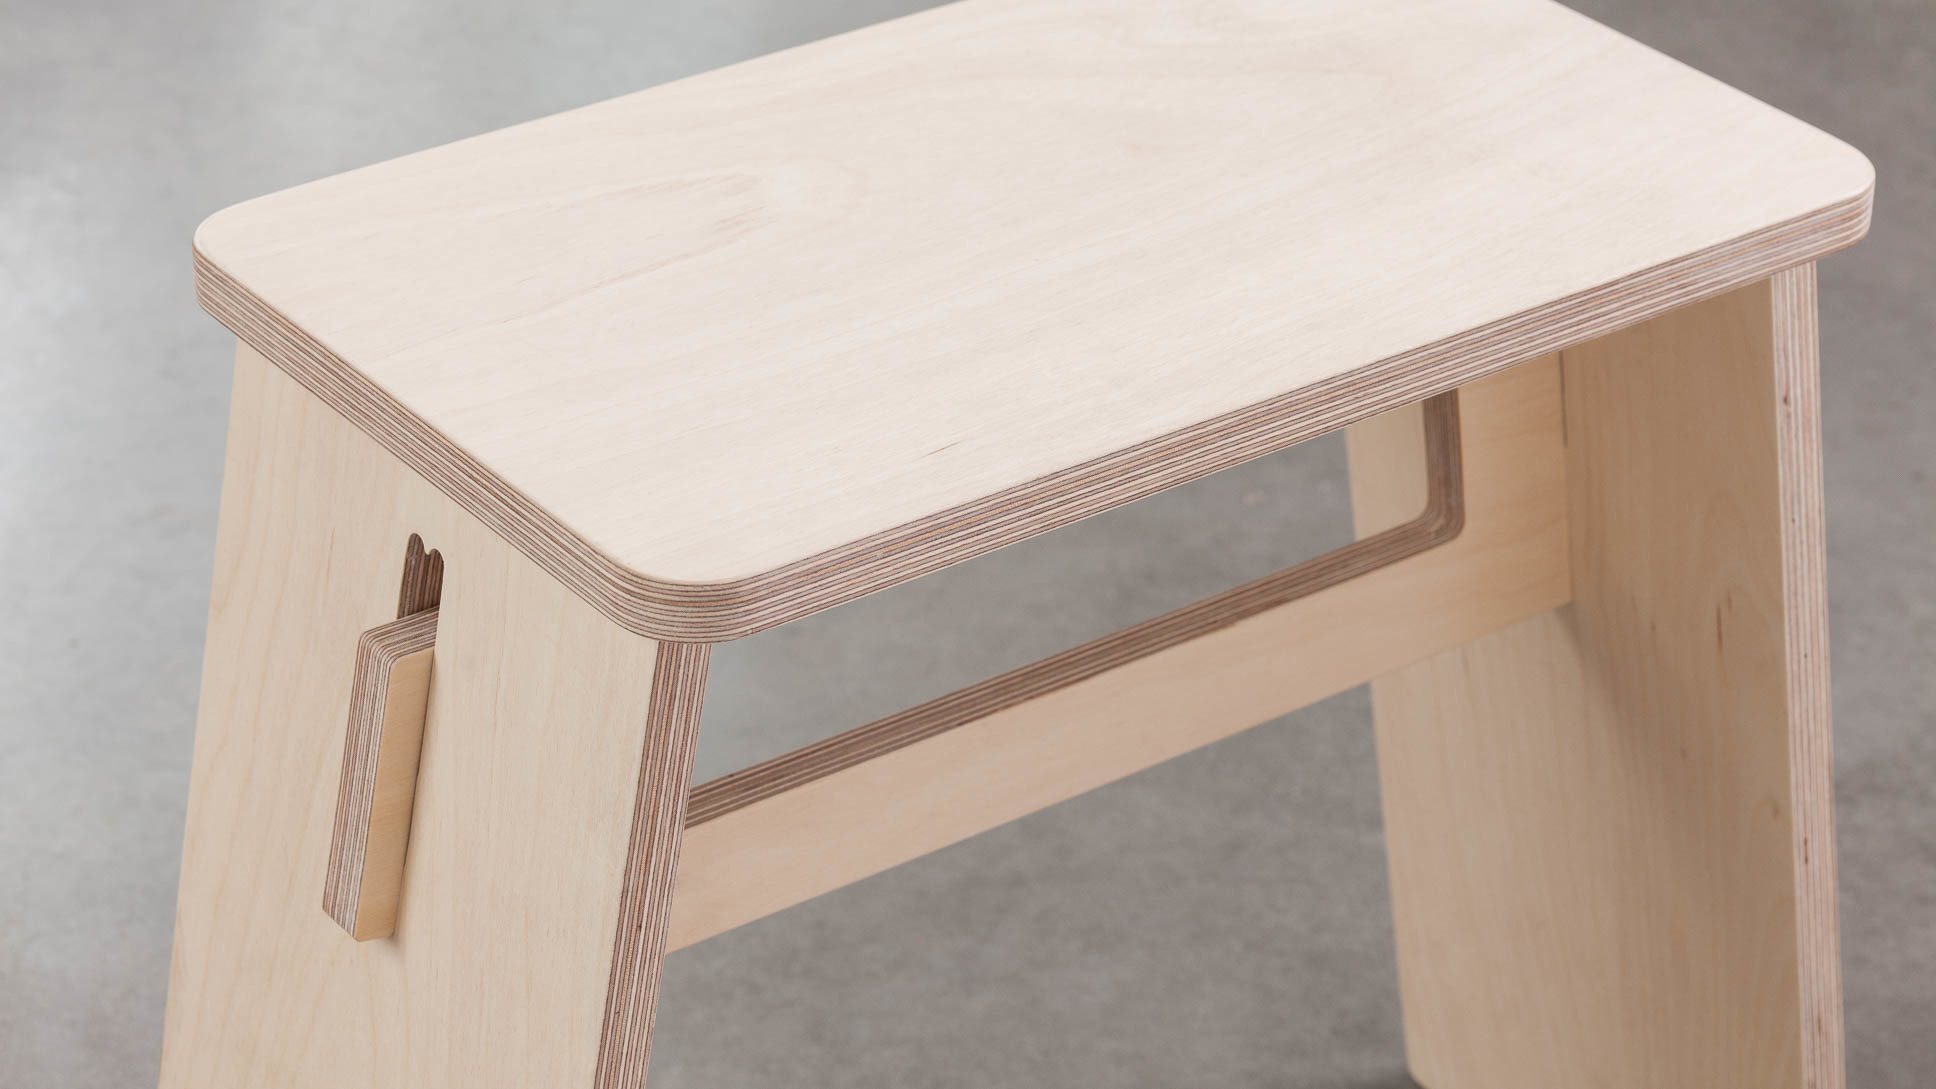 opendesk_furniture_johann-stool_product-page_gallery-image-Shot4-2300_v01.default